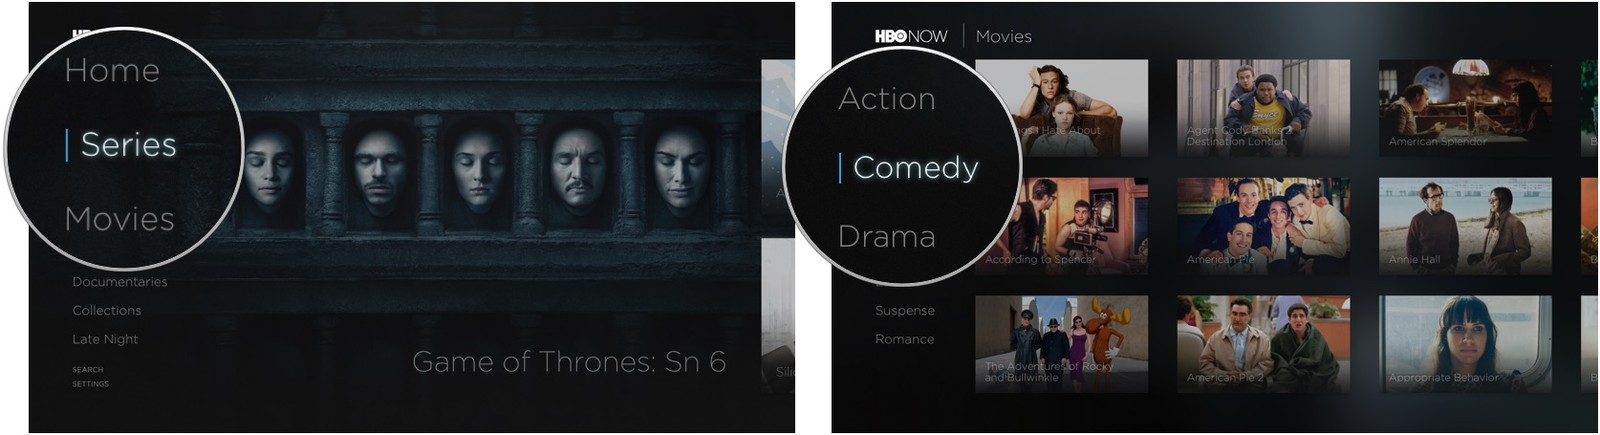 hbo now3